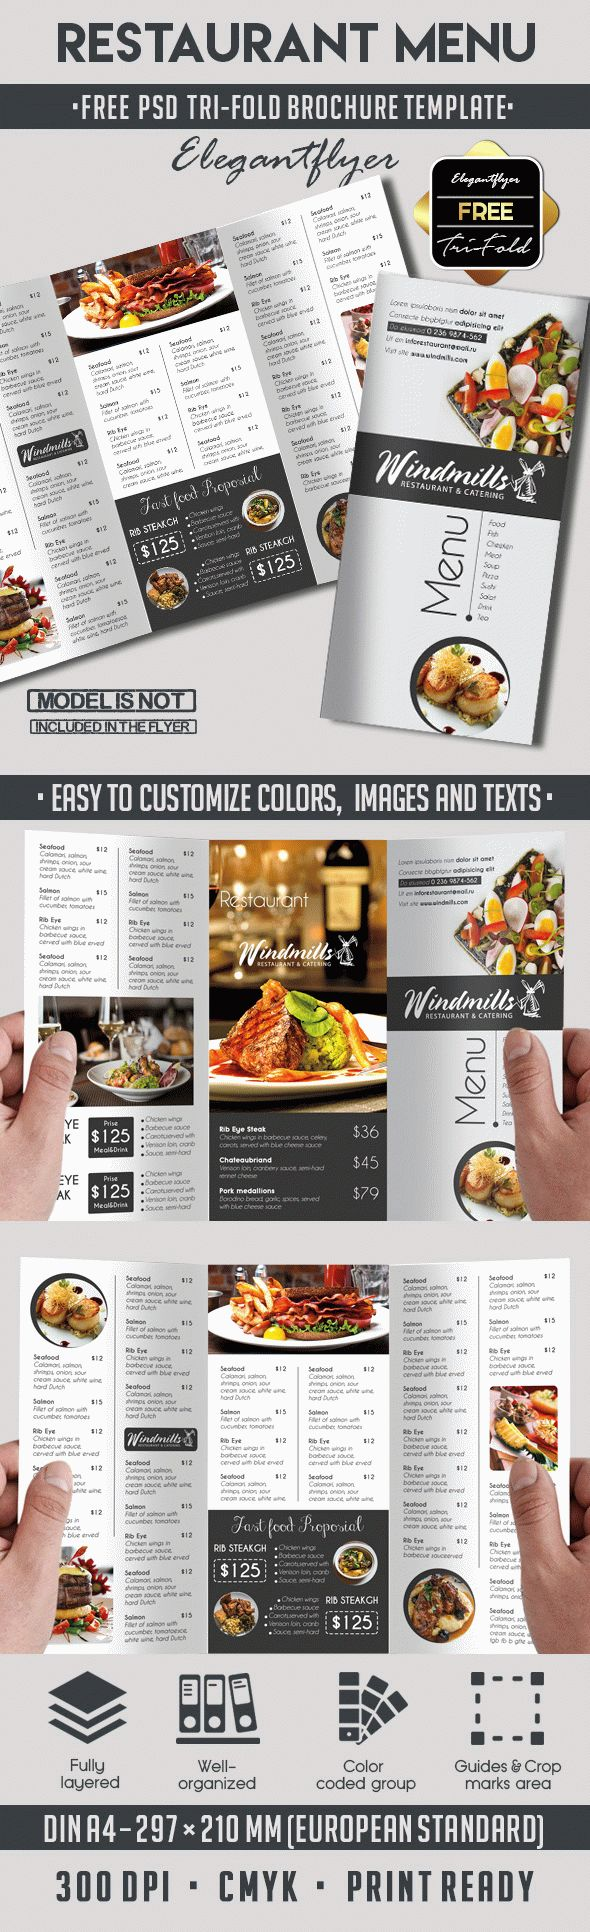 Restaurant menu free template by elegantflyer for Templates for restaurant menus